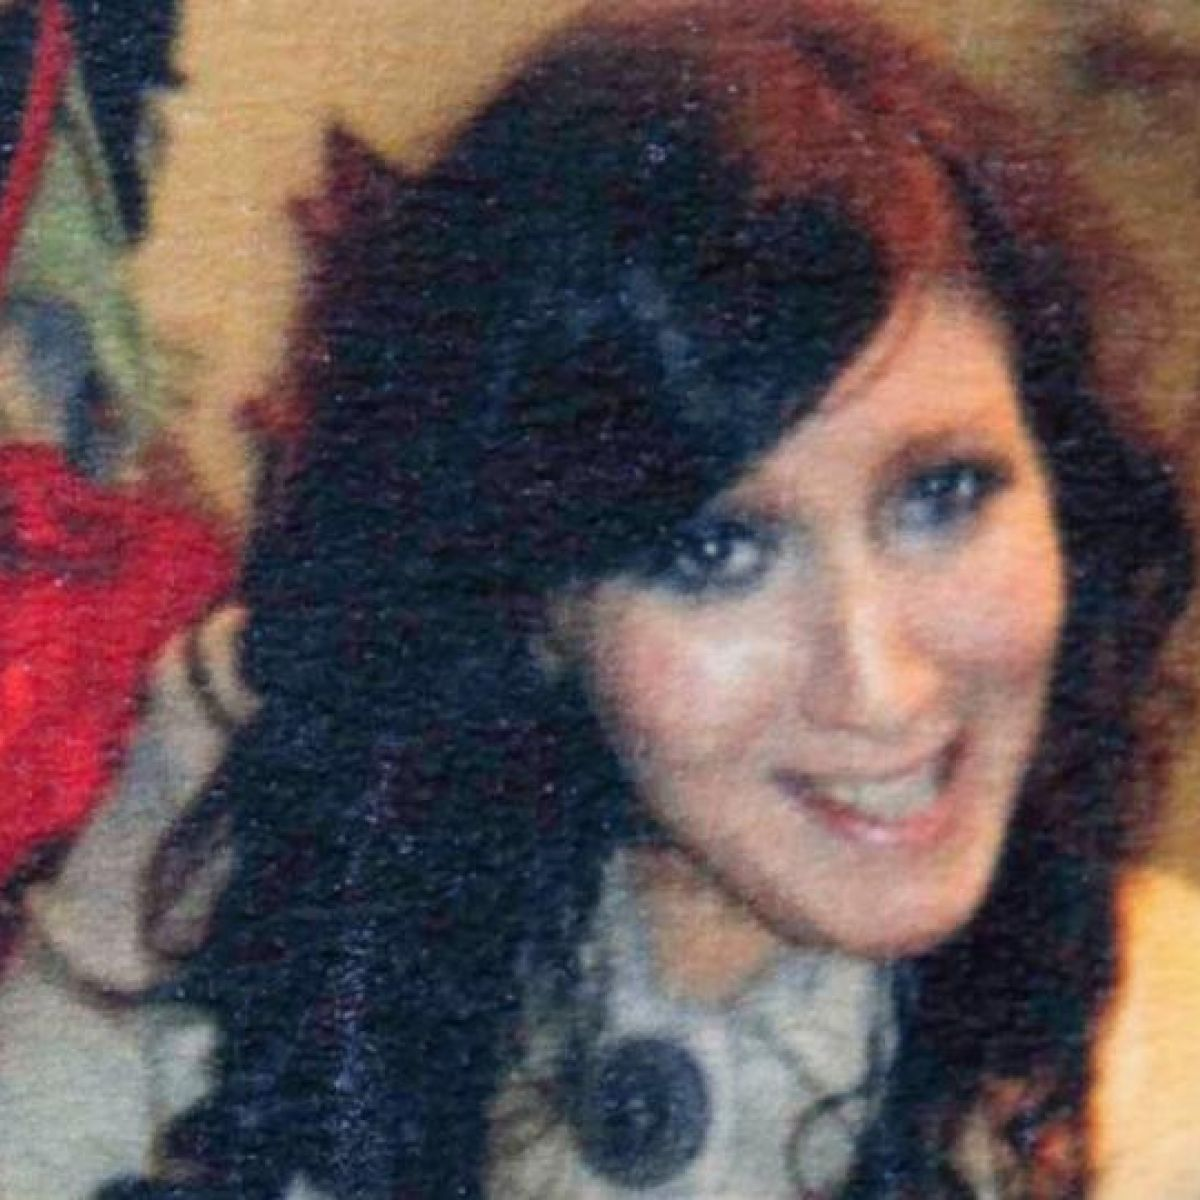 Inquest into junior doctor death told of long hospital hours